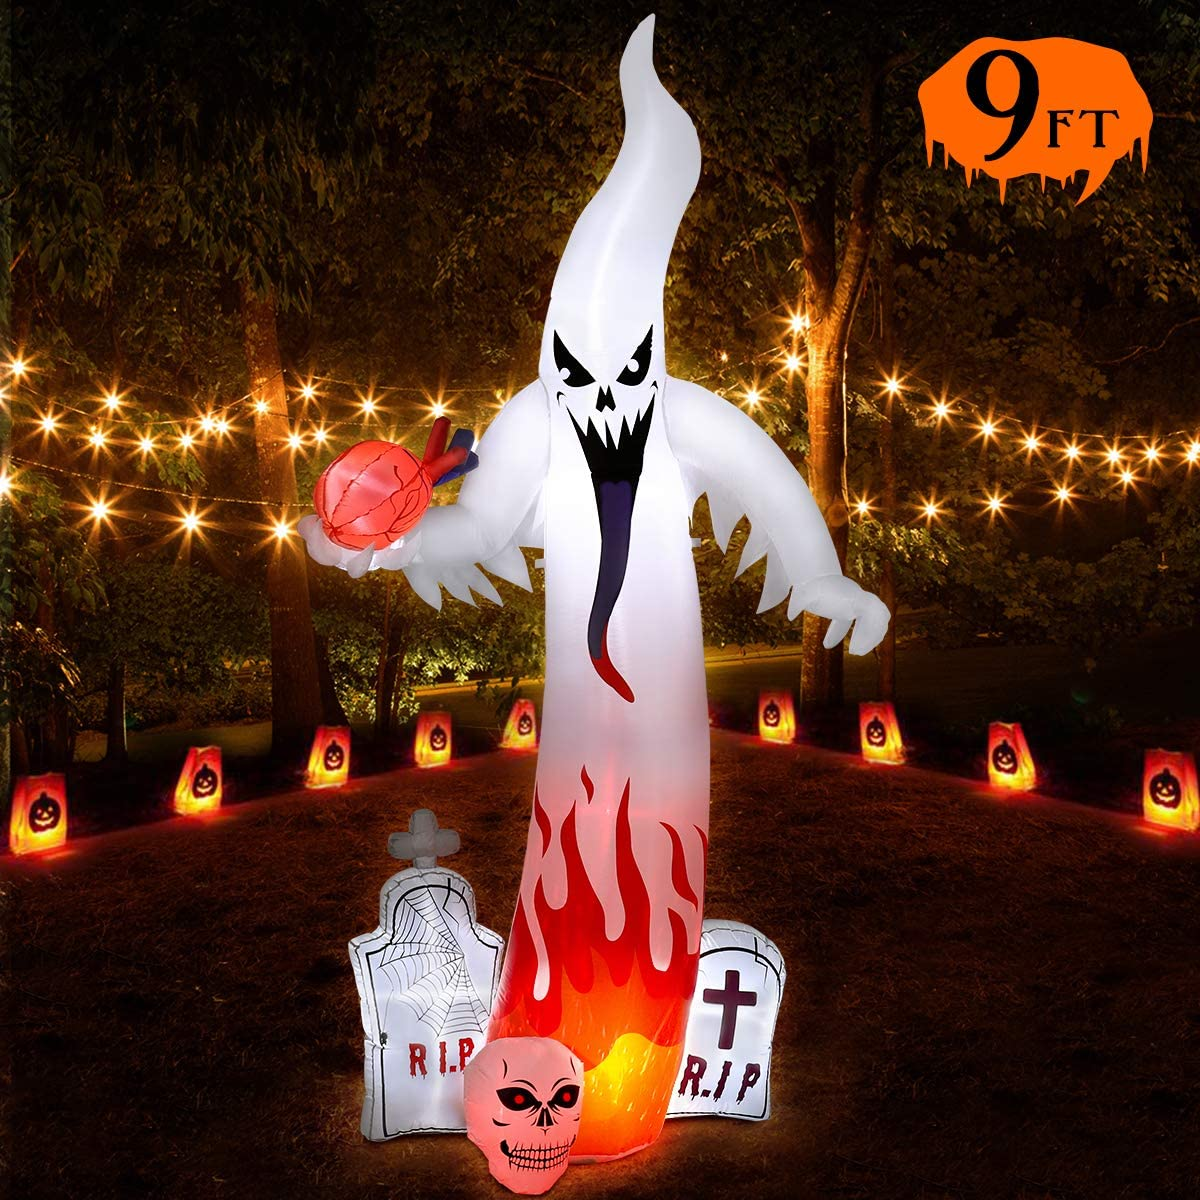 Halloween Inflatable Decorations Outdoor, 9FT Halloween Blow Up Inflatable for Yard, Garden Decorations, Build-in LEDs